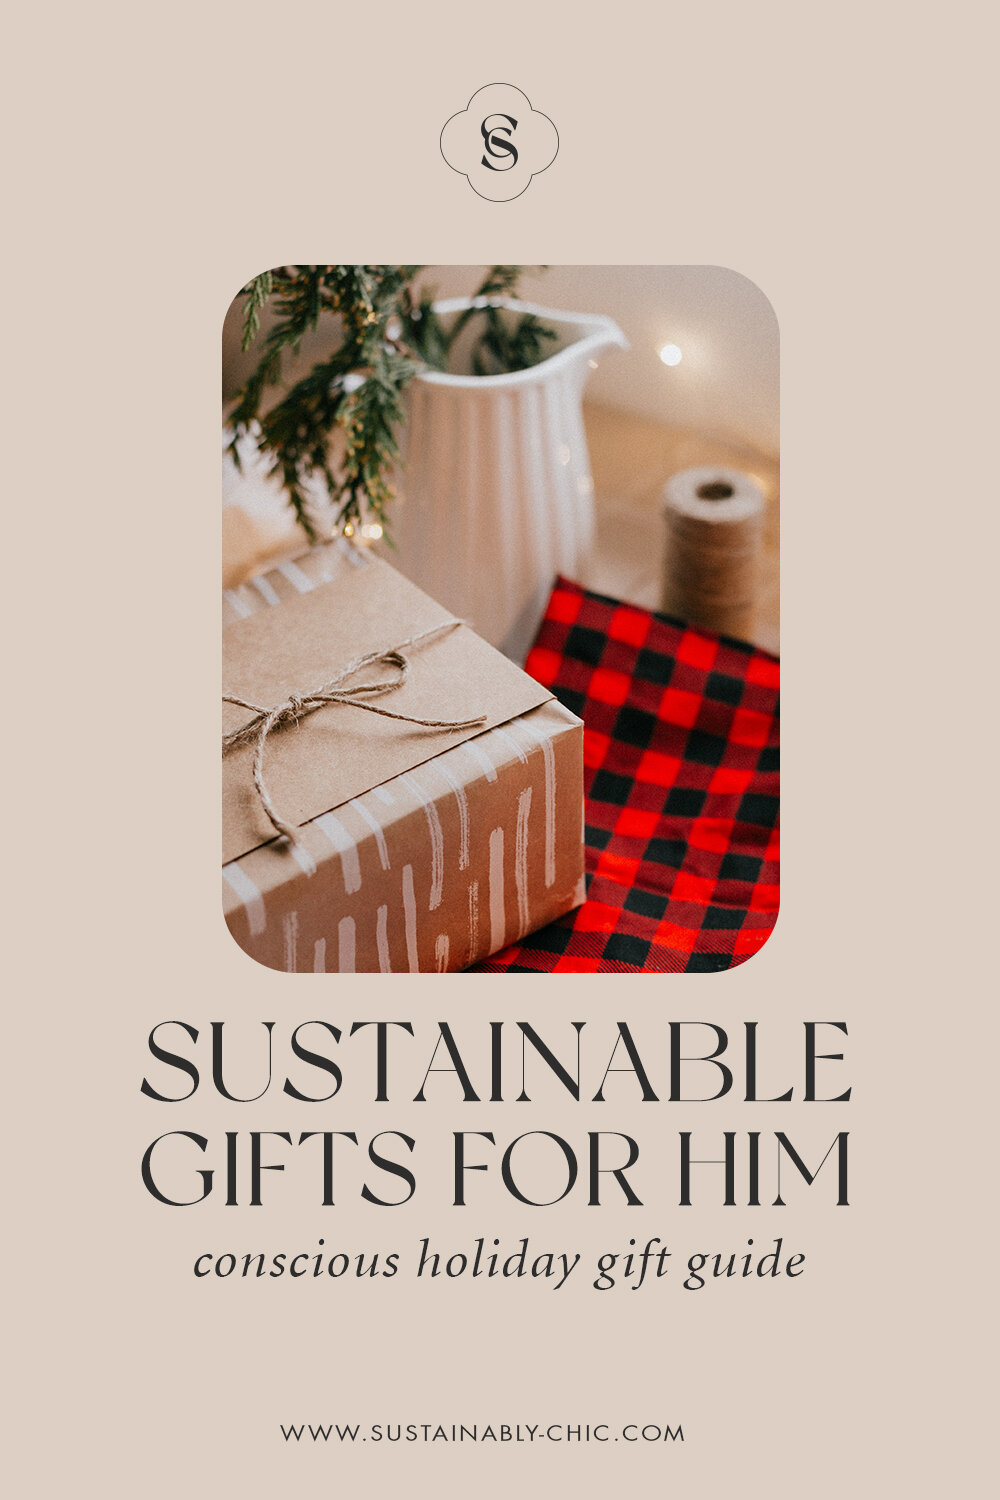 Sustainably Chic | Sustainable Fashion, Beauty & Lifestyle Blog | The Best Sustainable Gifts for Him.jpg